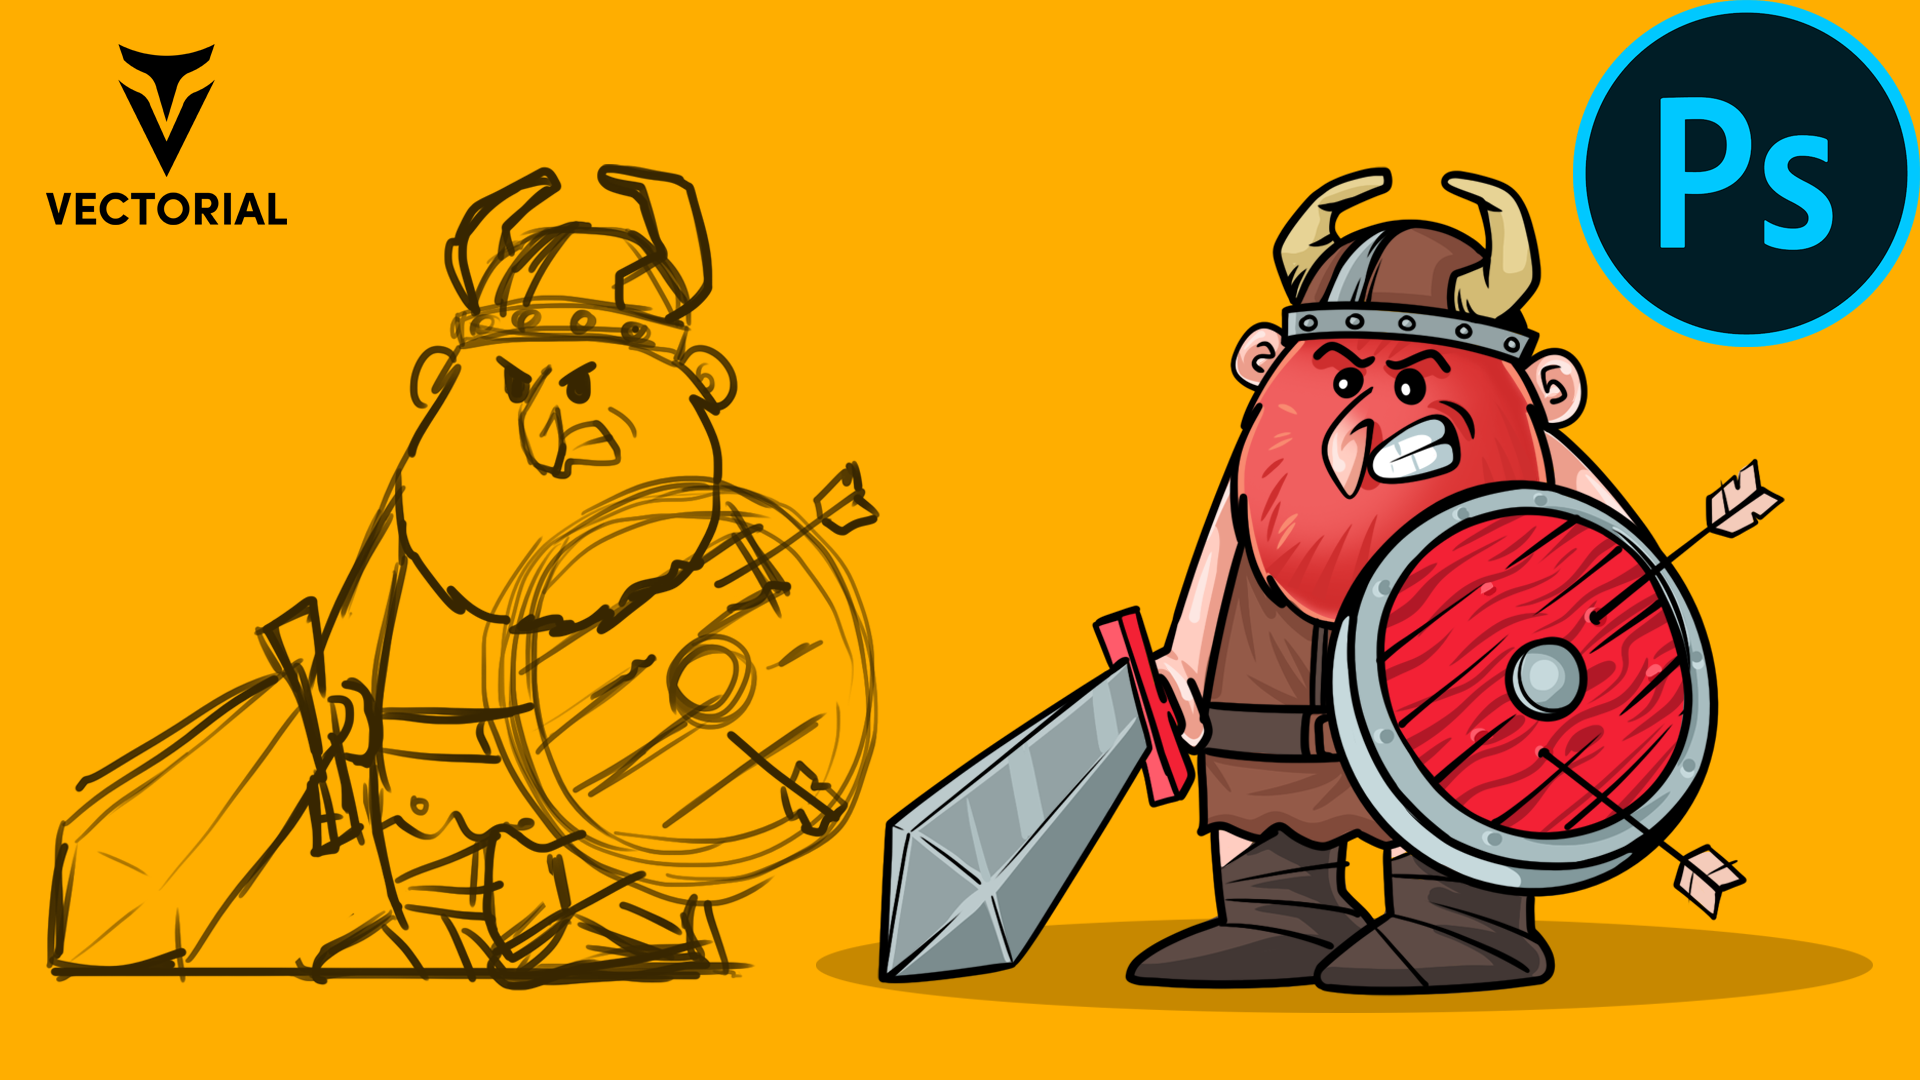 How to draw a Viking in Adobe Photoshop